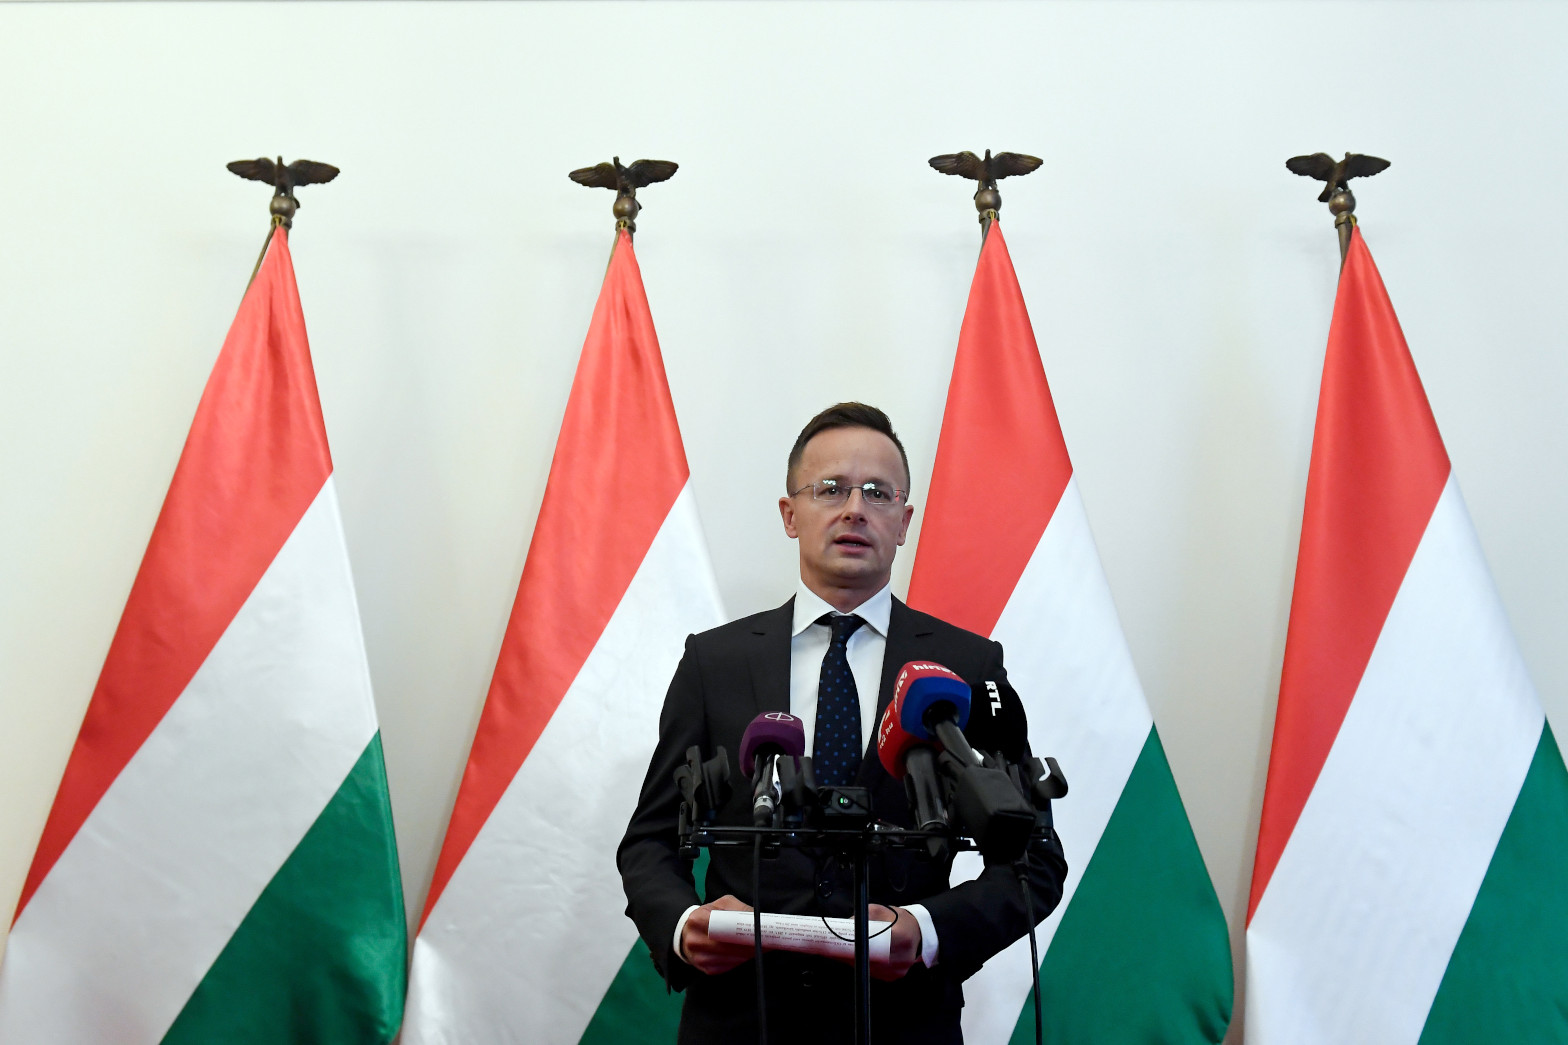 Hungary's Foreign Minister: Boris Johnson 'Knows What He Is Doing'